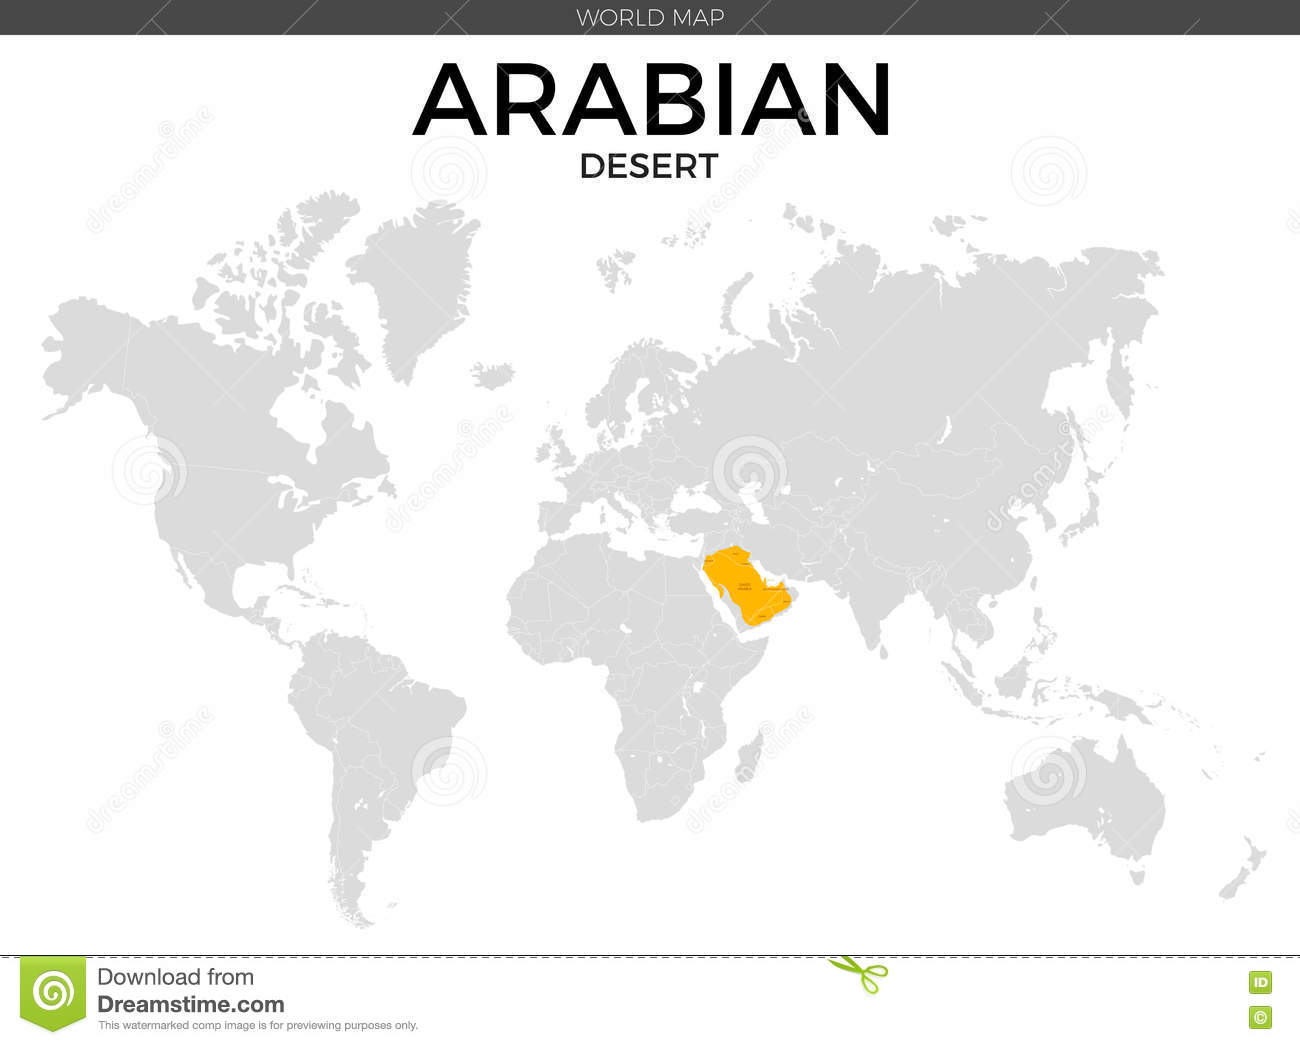 Arabian Desert Location Map Stock Vector - Illustration of ... on namib desert location world map, sahara desert ecosystem, sahara desert morocco map, syrian desert location world map, sahara desert map minecraft, sahara desert trade route map, location of desert world map, sahara desert africa, the sahara desert map, dardanelles strait world map, western sahara river map, sahara desert map outline, sahara desert water cycle, kalahari desert location world map, tropical grassland savanna biome map, sahara desert camel, sahara desert countries, sahara desert map egypt, sahara desert tour, ancient africa trade routes map,